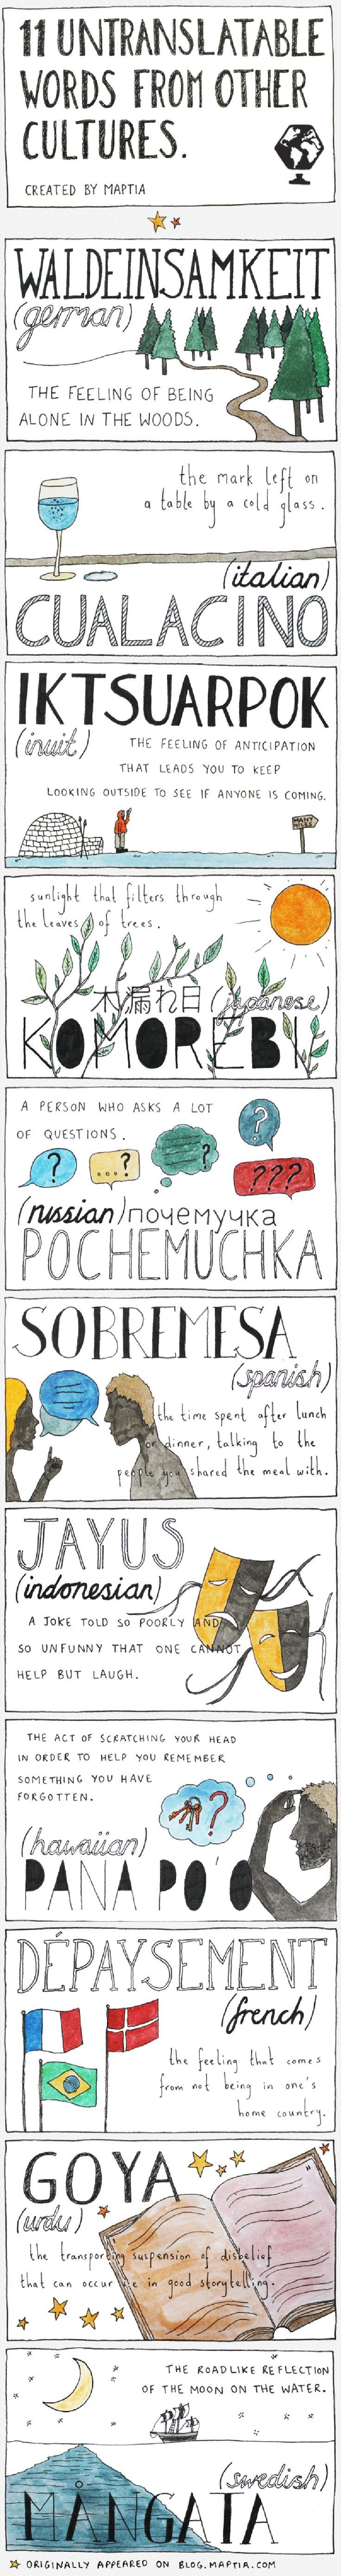 Untranslatable words infographic. My favorite: Goya- an Urdu word meaning the transporting suspension of disbelief that can occur in good storytelling